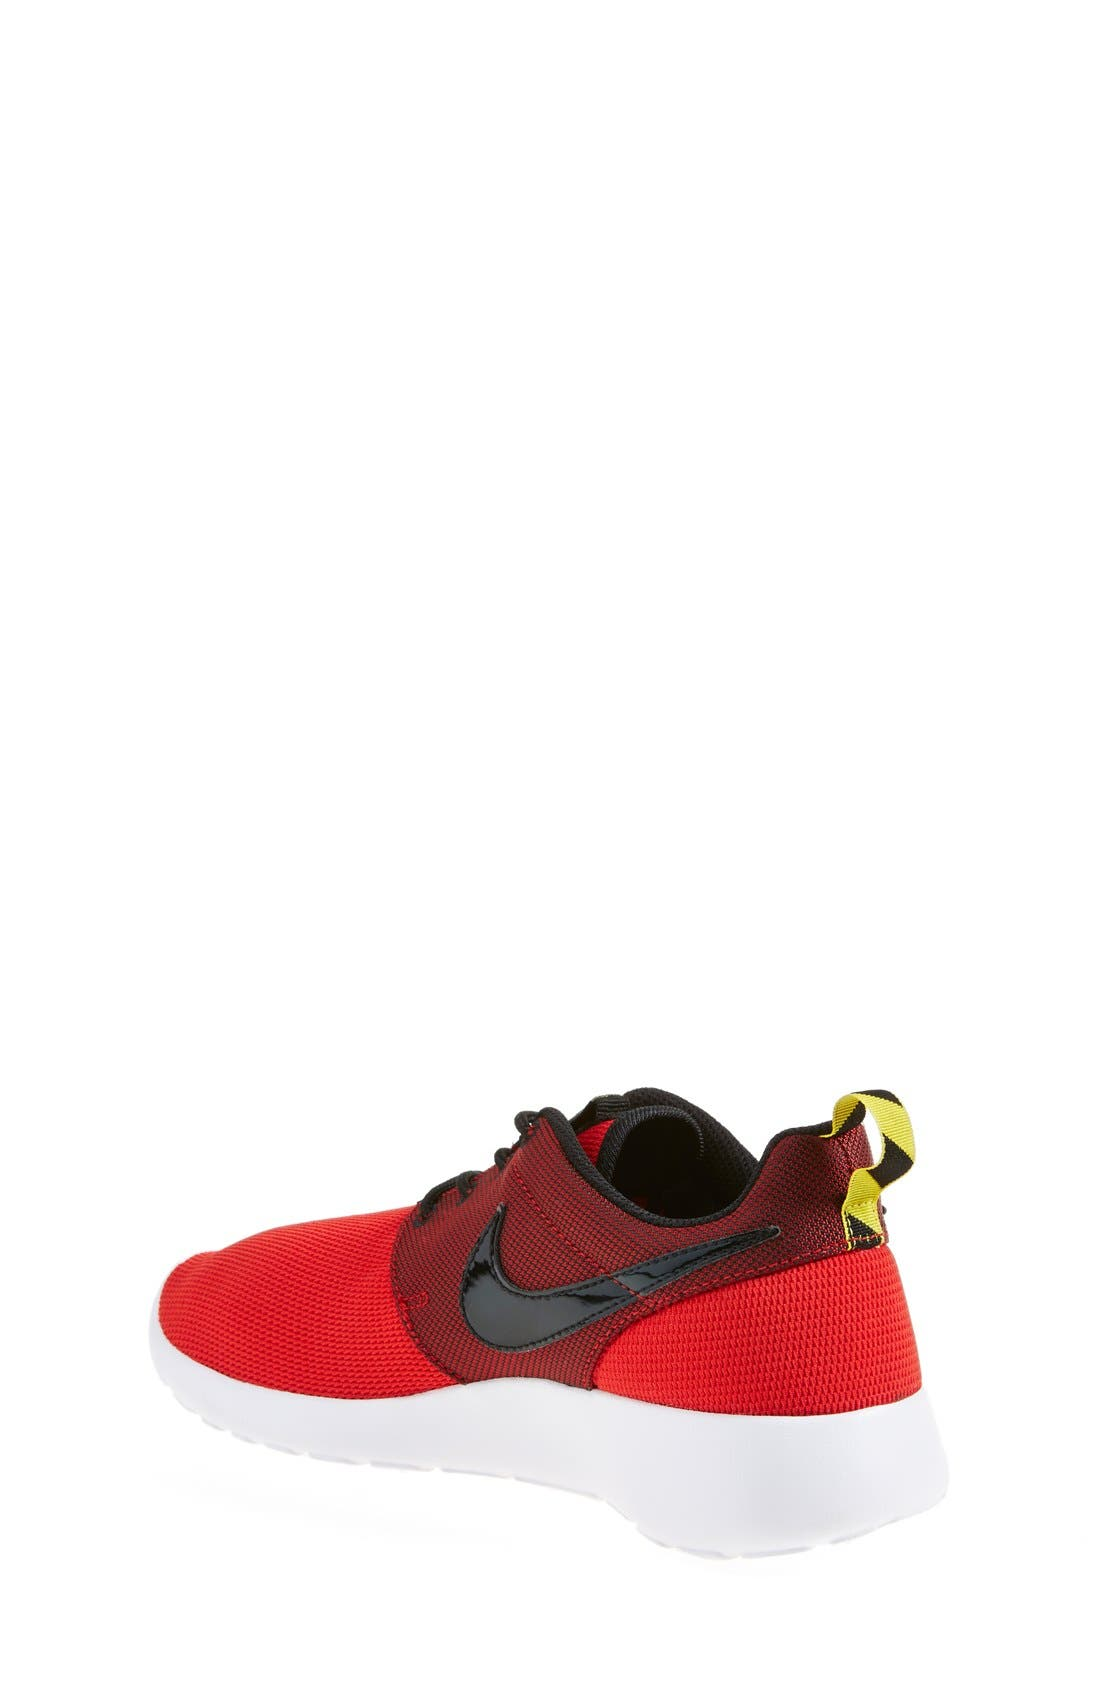 'Roshe Run' Sneaker,                             Alternate thumbnail 142, color,